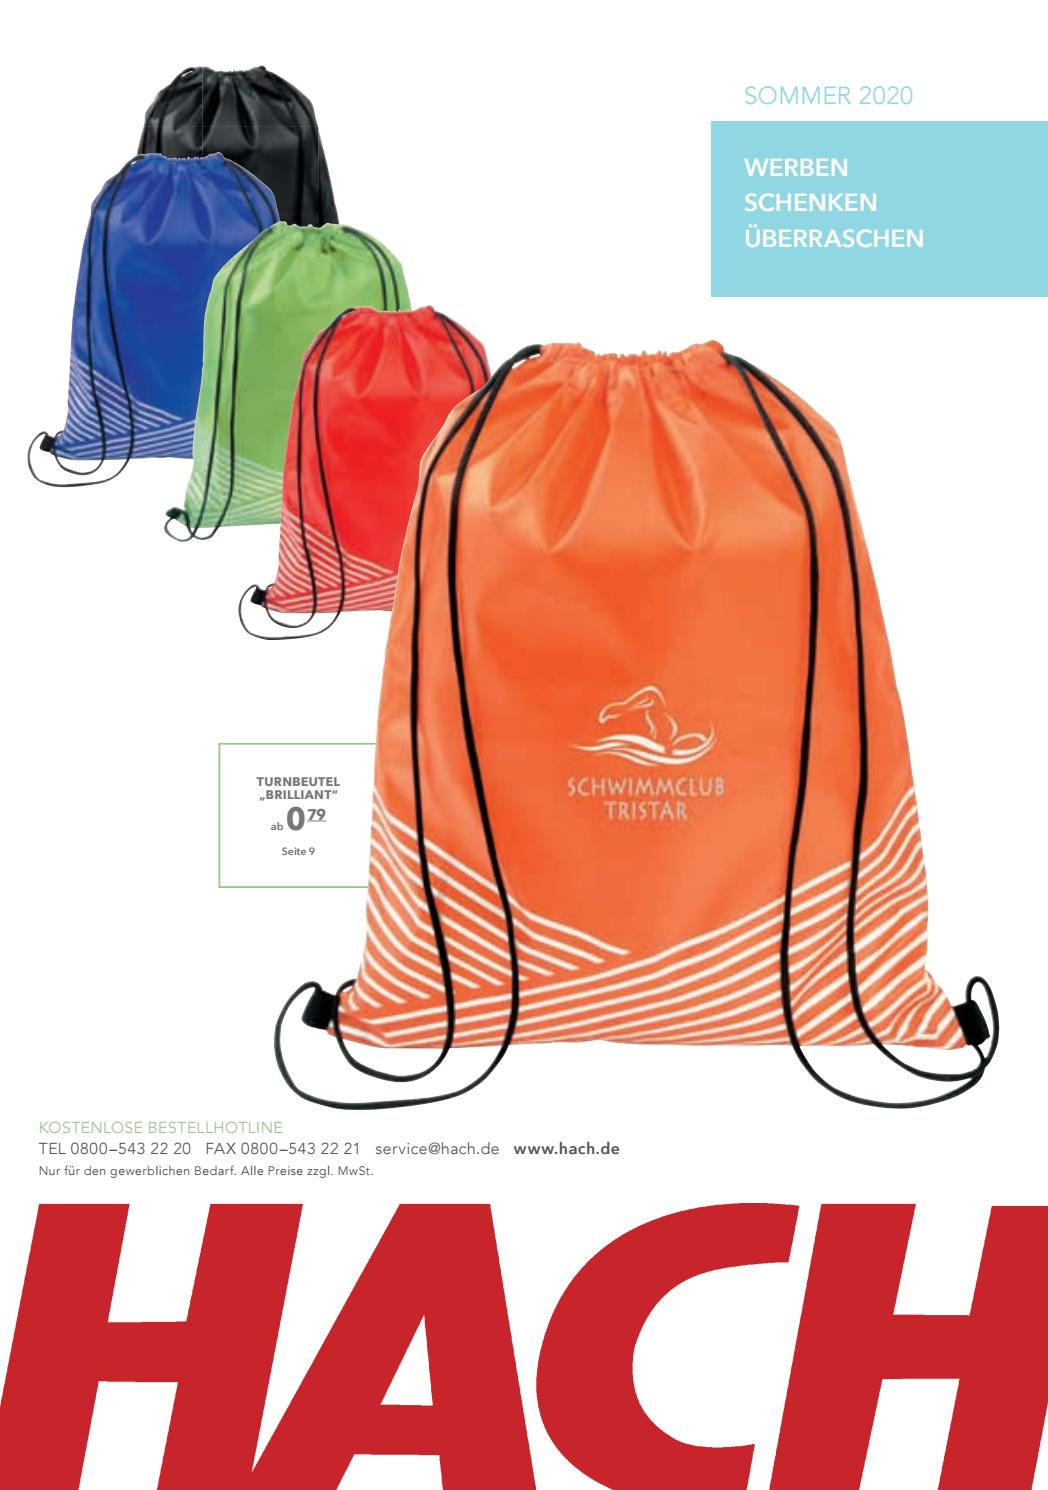 Hach Katalog Sommer 2020 By Hach Gmbh Co Kg Issuu